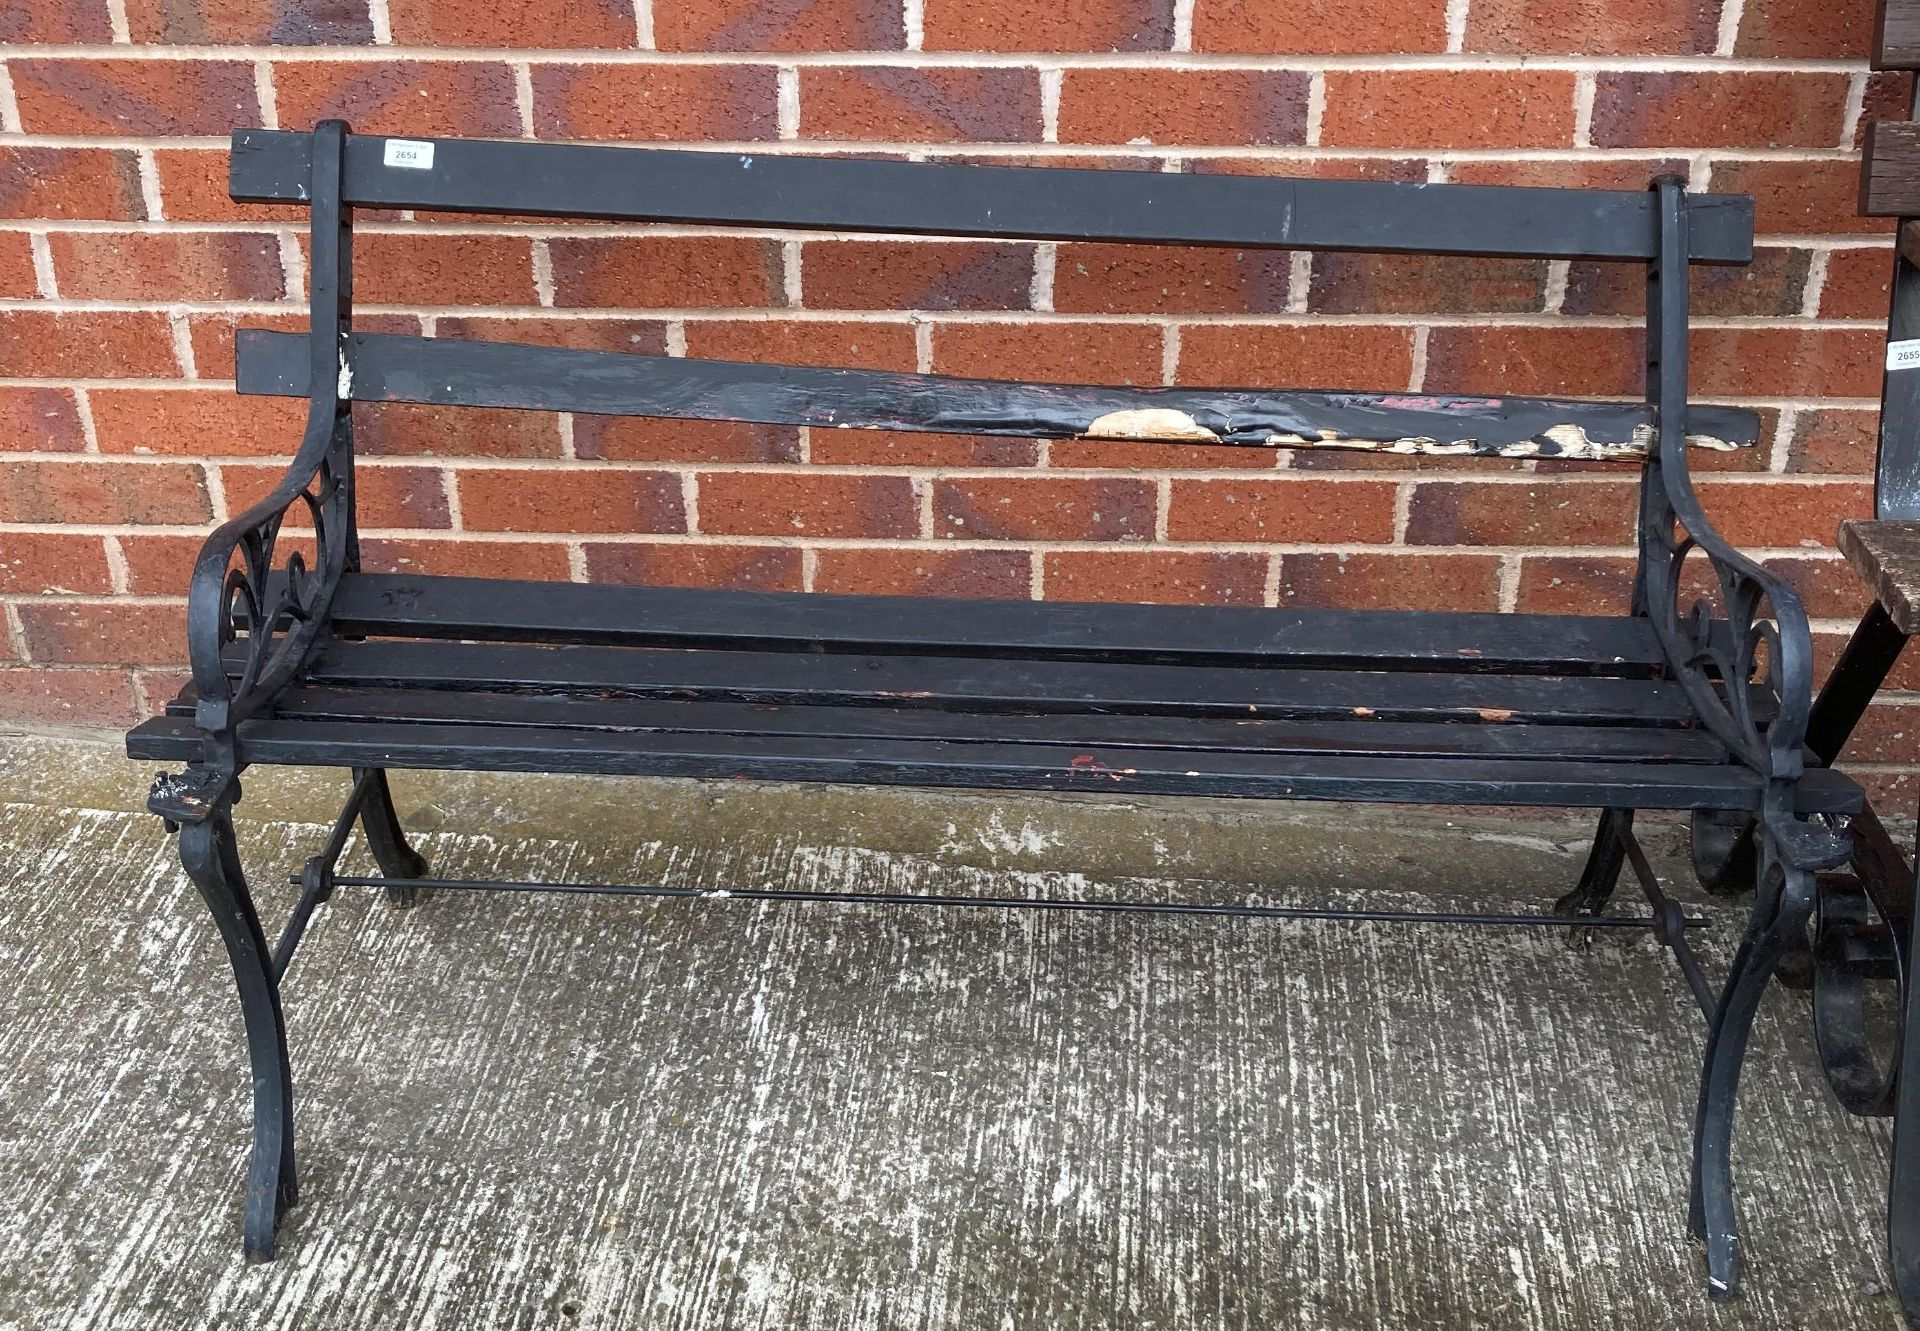 A lightweight metal framed outdoor bench with black painted wood slats 120cm long